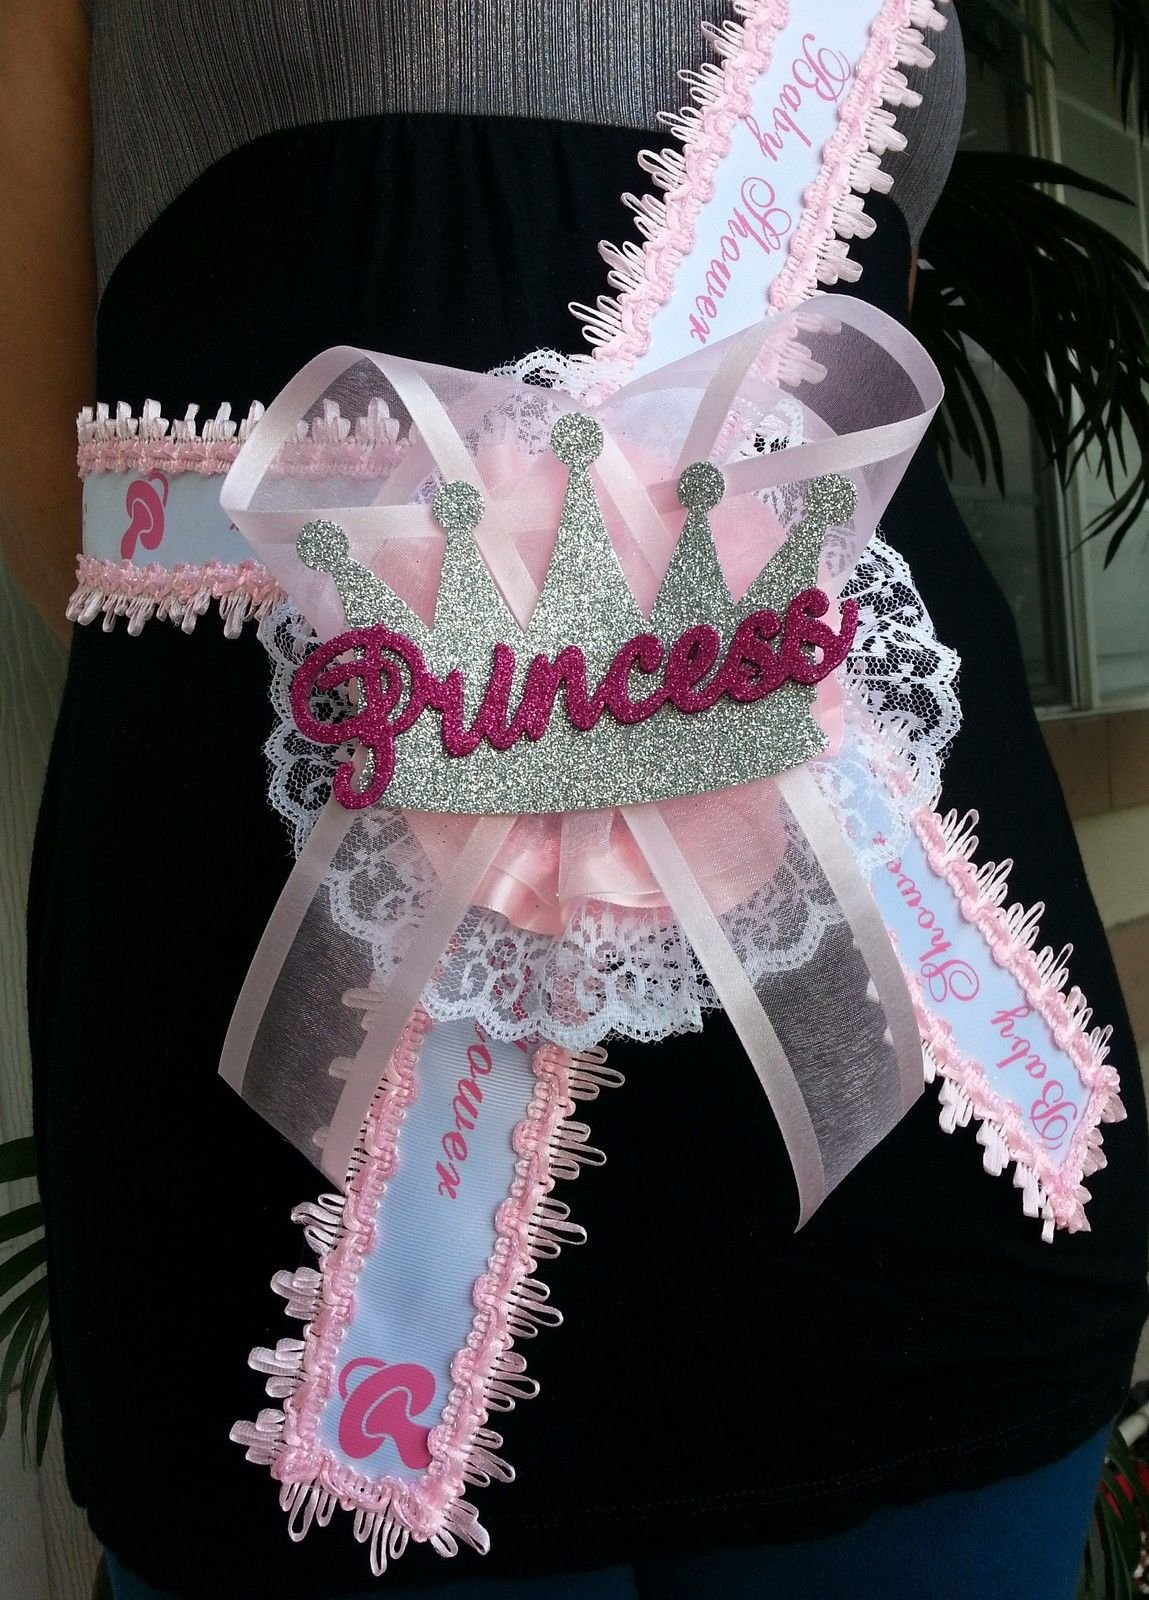 Baby Shower Mom To Be It's a Girl Sash with Princess Crown Pink Ribbon Corsage by PRODUCT 789 (Image #3)